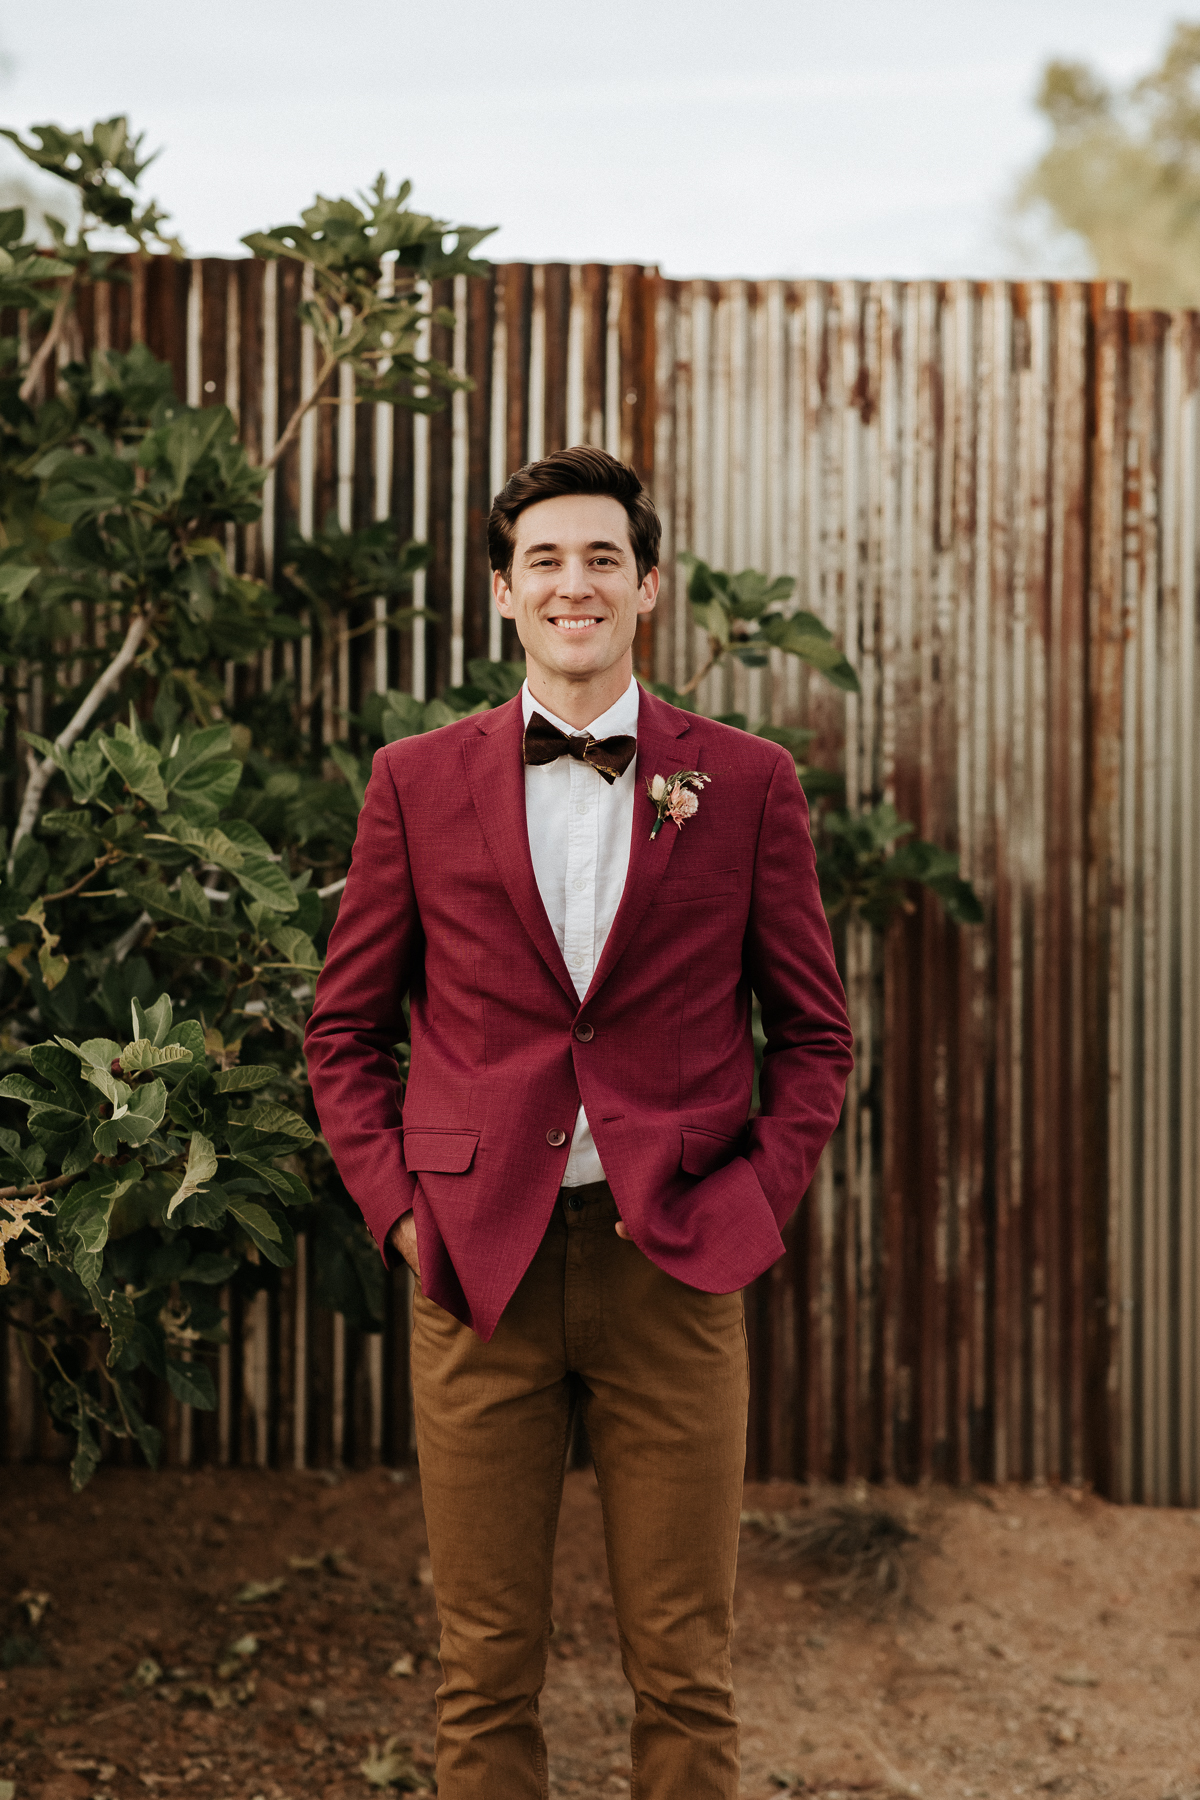 Megan Claire Photography | Arizona Wedding Photographer.  Rustic Glam Backyard Wedding. Groom wearing maroon red suit with bow tie